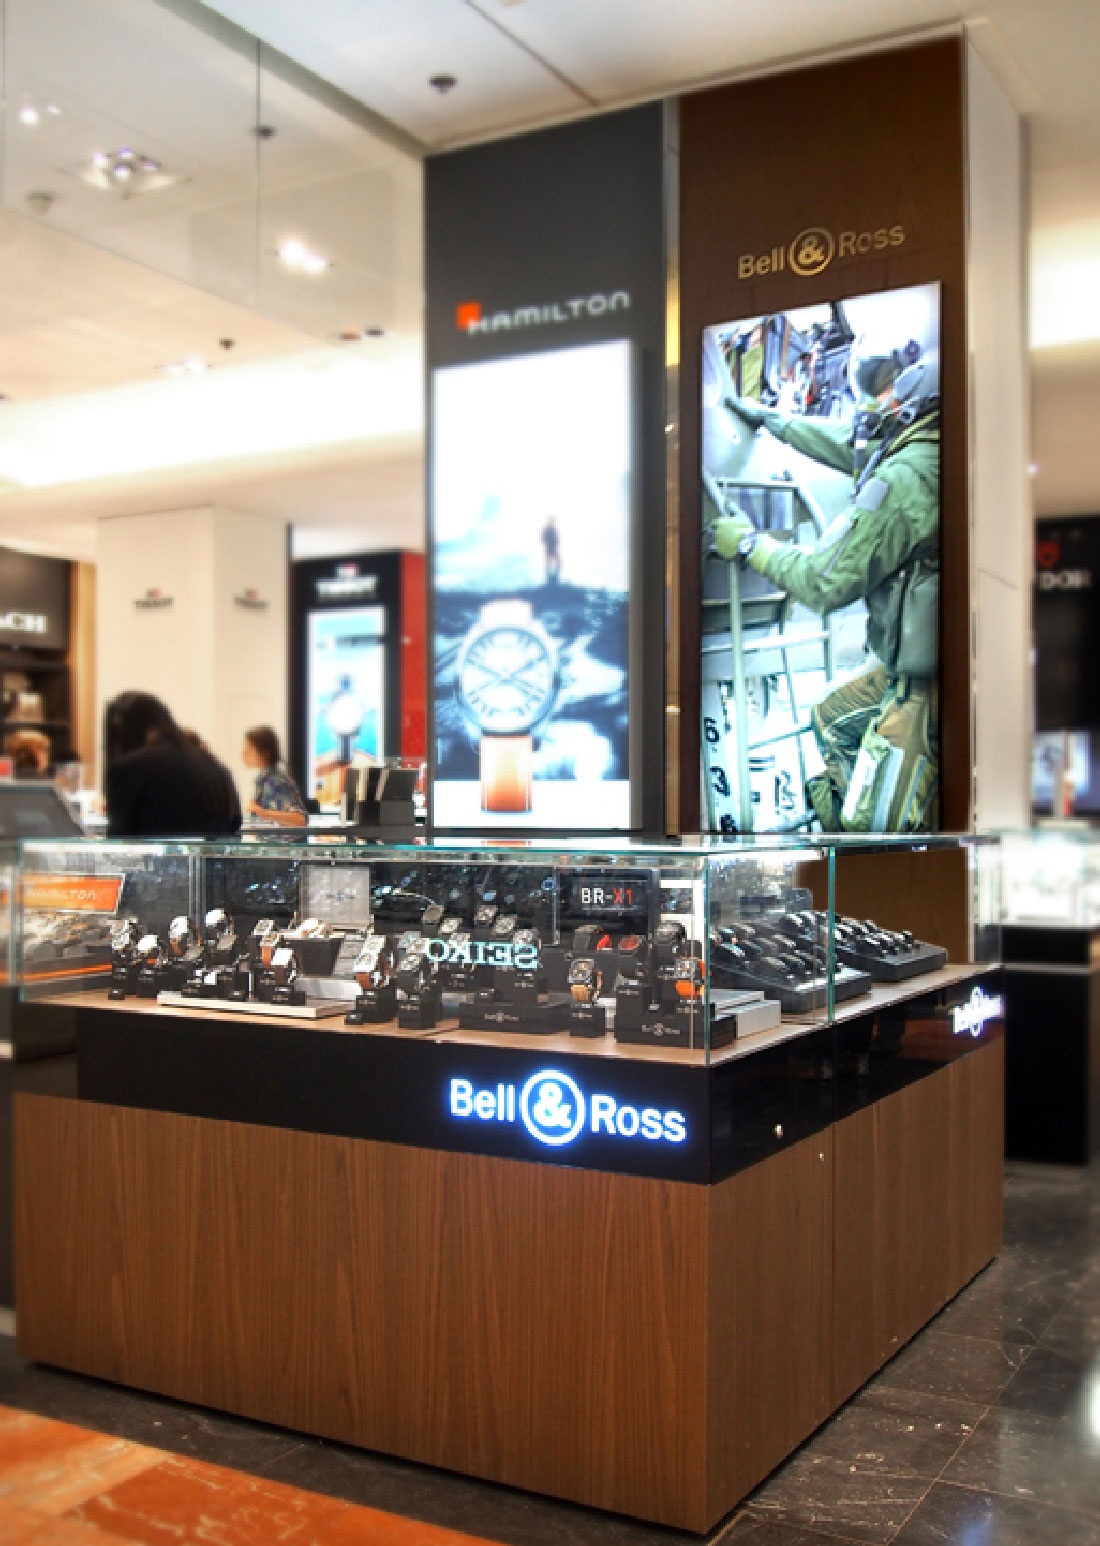 DCA_Bell&Ross Agencement point vente